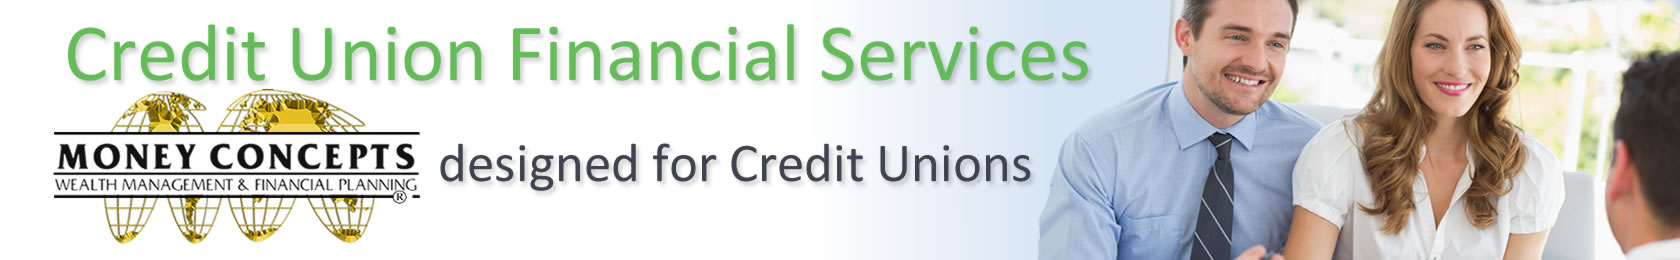 Financial Service Programs for Credit Unions